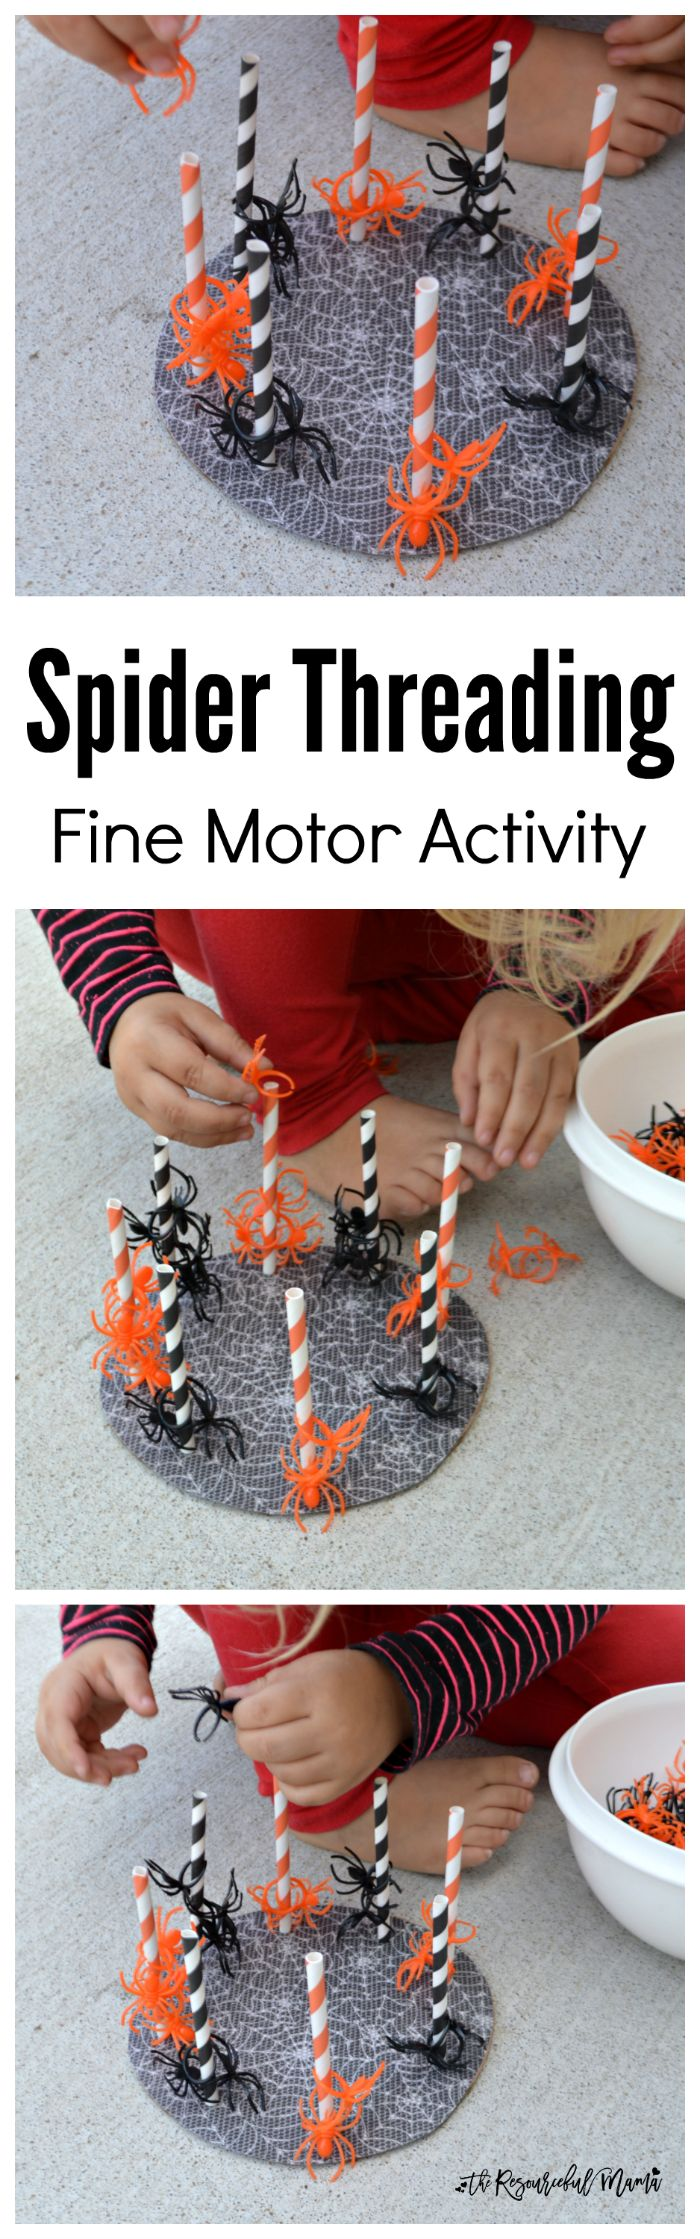 This fun spider threading activity is great for building fine motor skills, hand-eye coordination, learning colors, and developing early math skills.